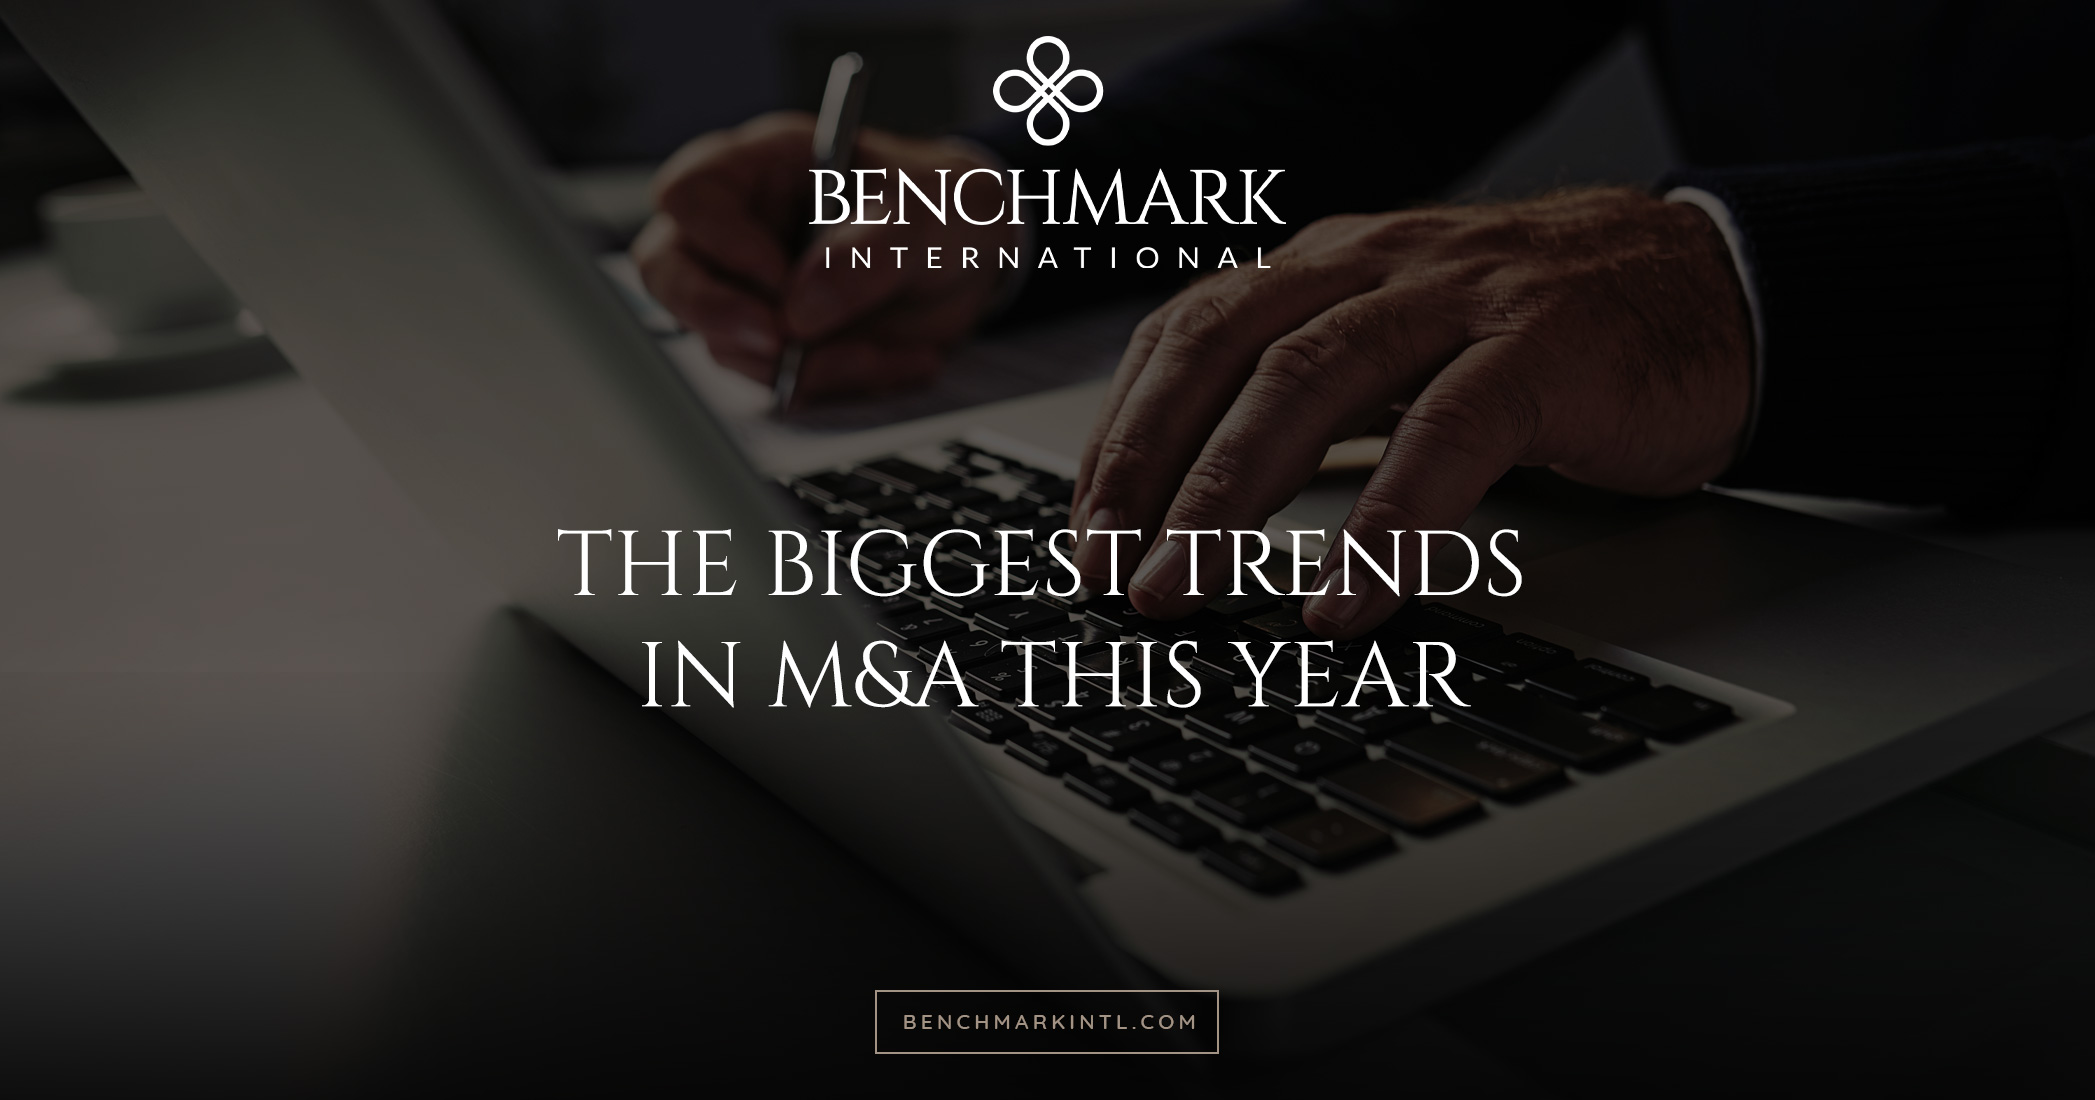 The Biggest Trends In M&A This Year